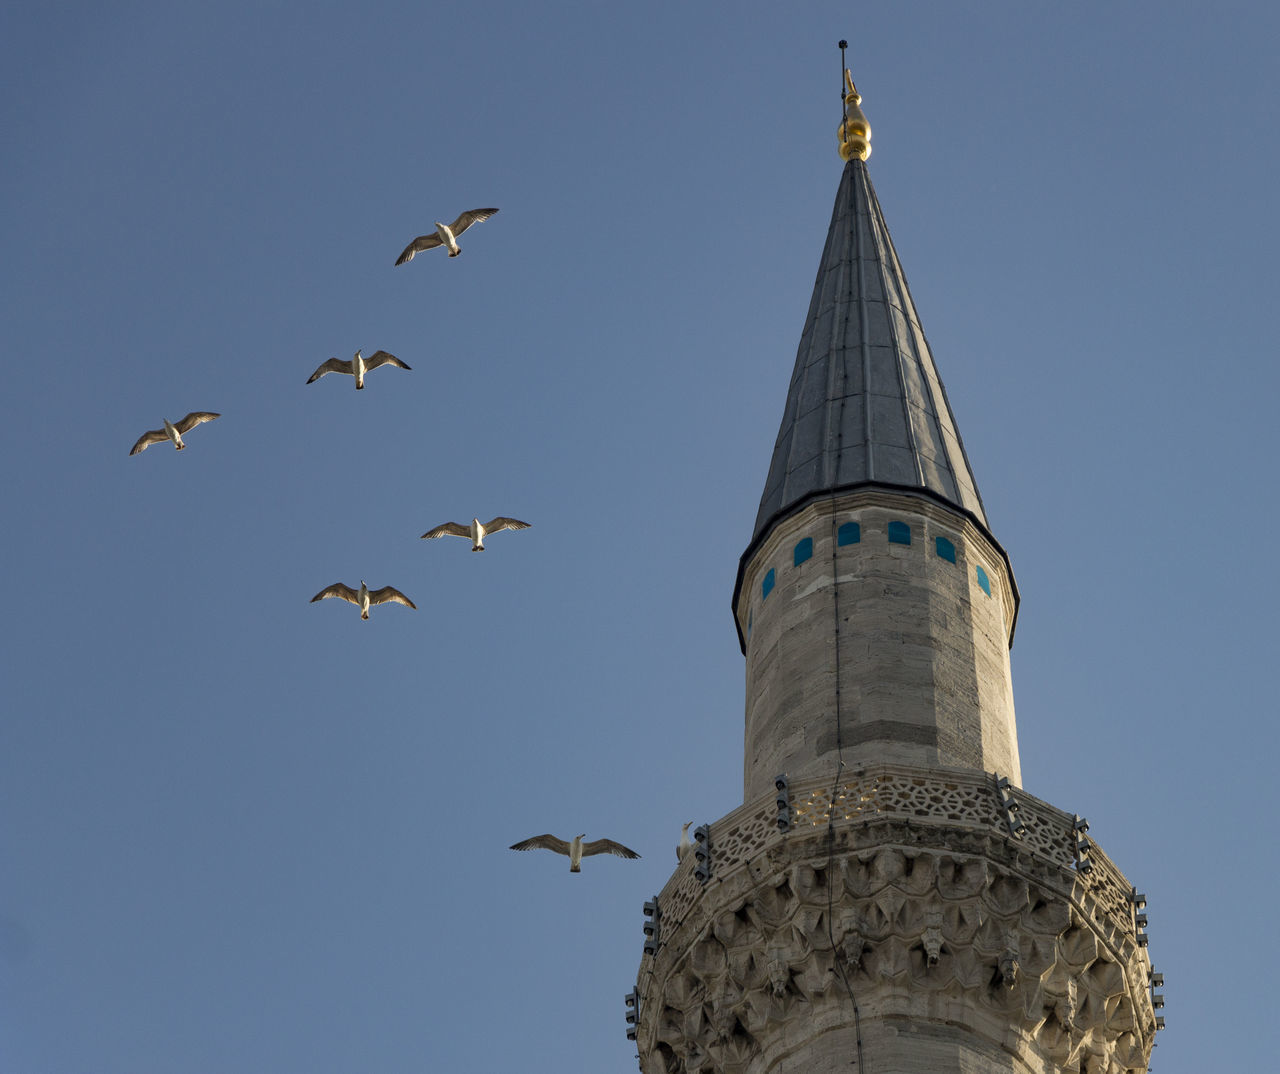 minaret EyeEmNewHere Architecture Bird Blue Sky Building Exterior Built Structure Clear Sky Day Flying Gull Gulls Low Angle View Minaret Minaret Mosque No People Outdoors Sky Spread Wings